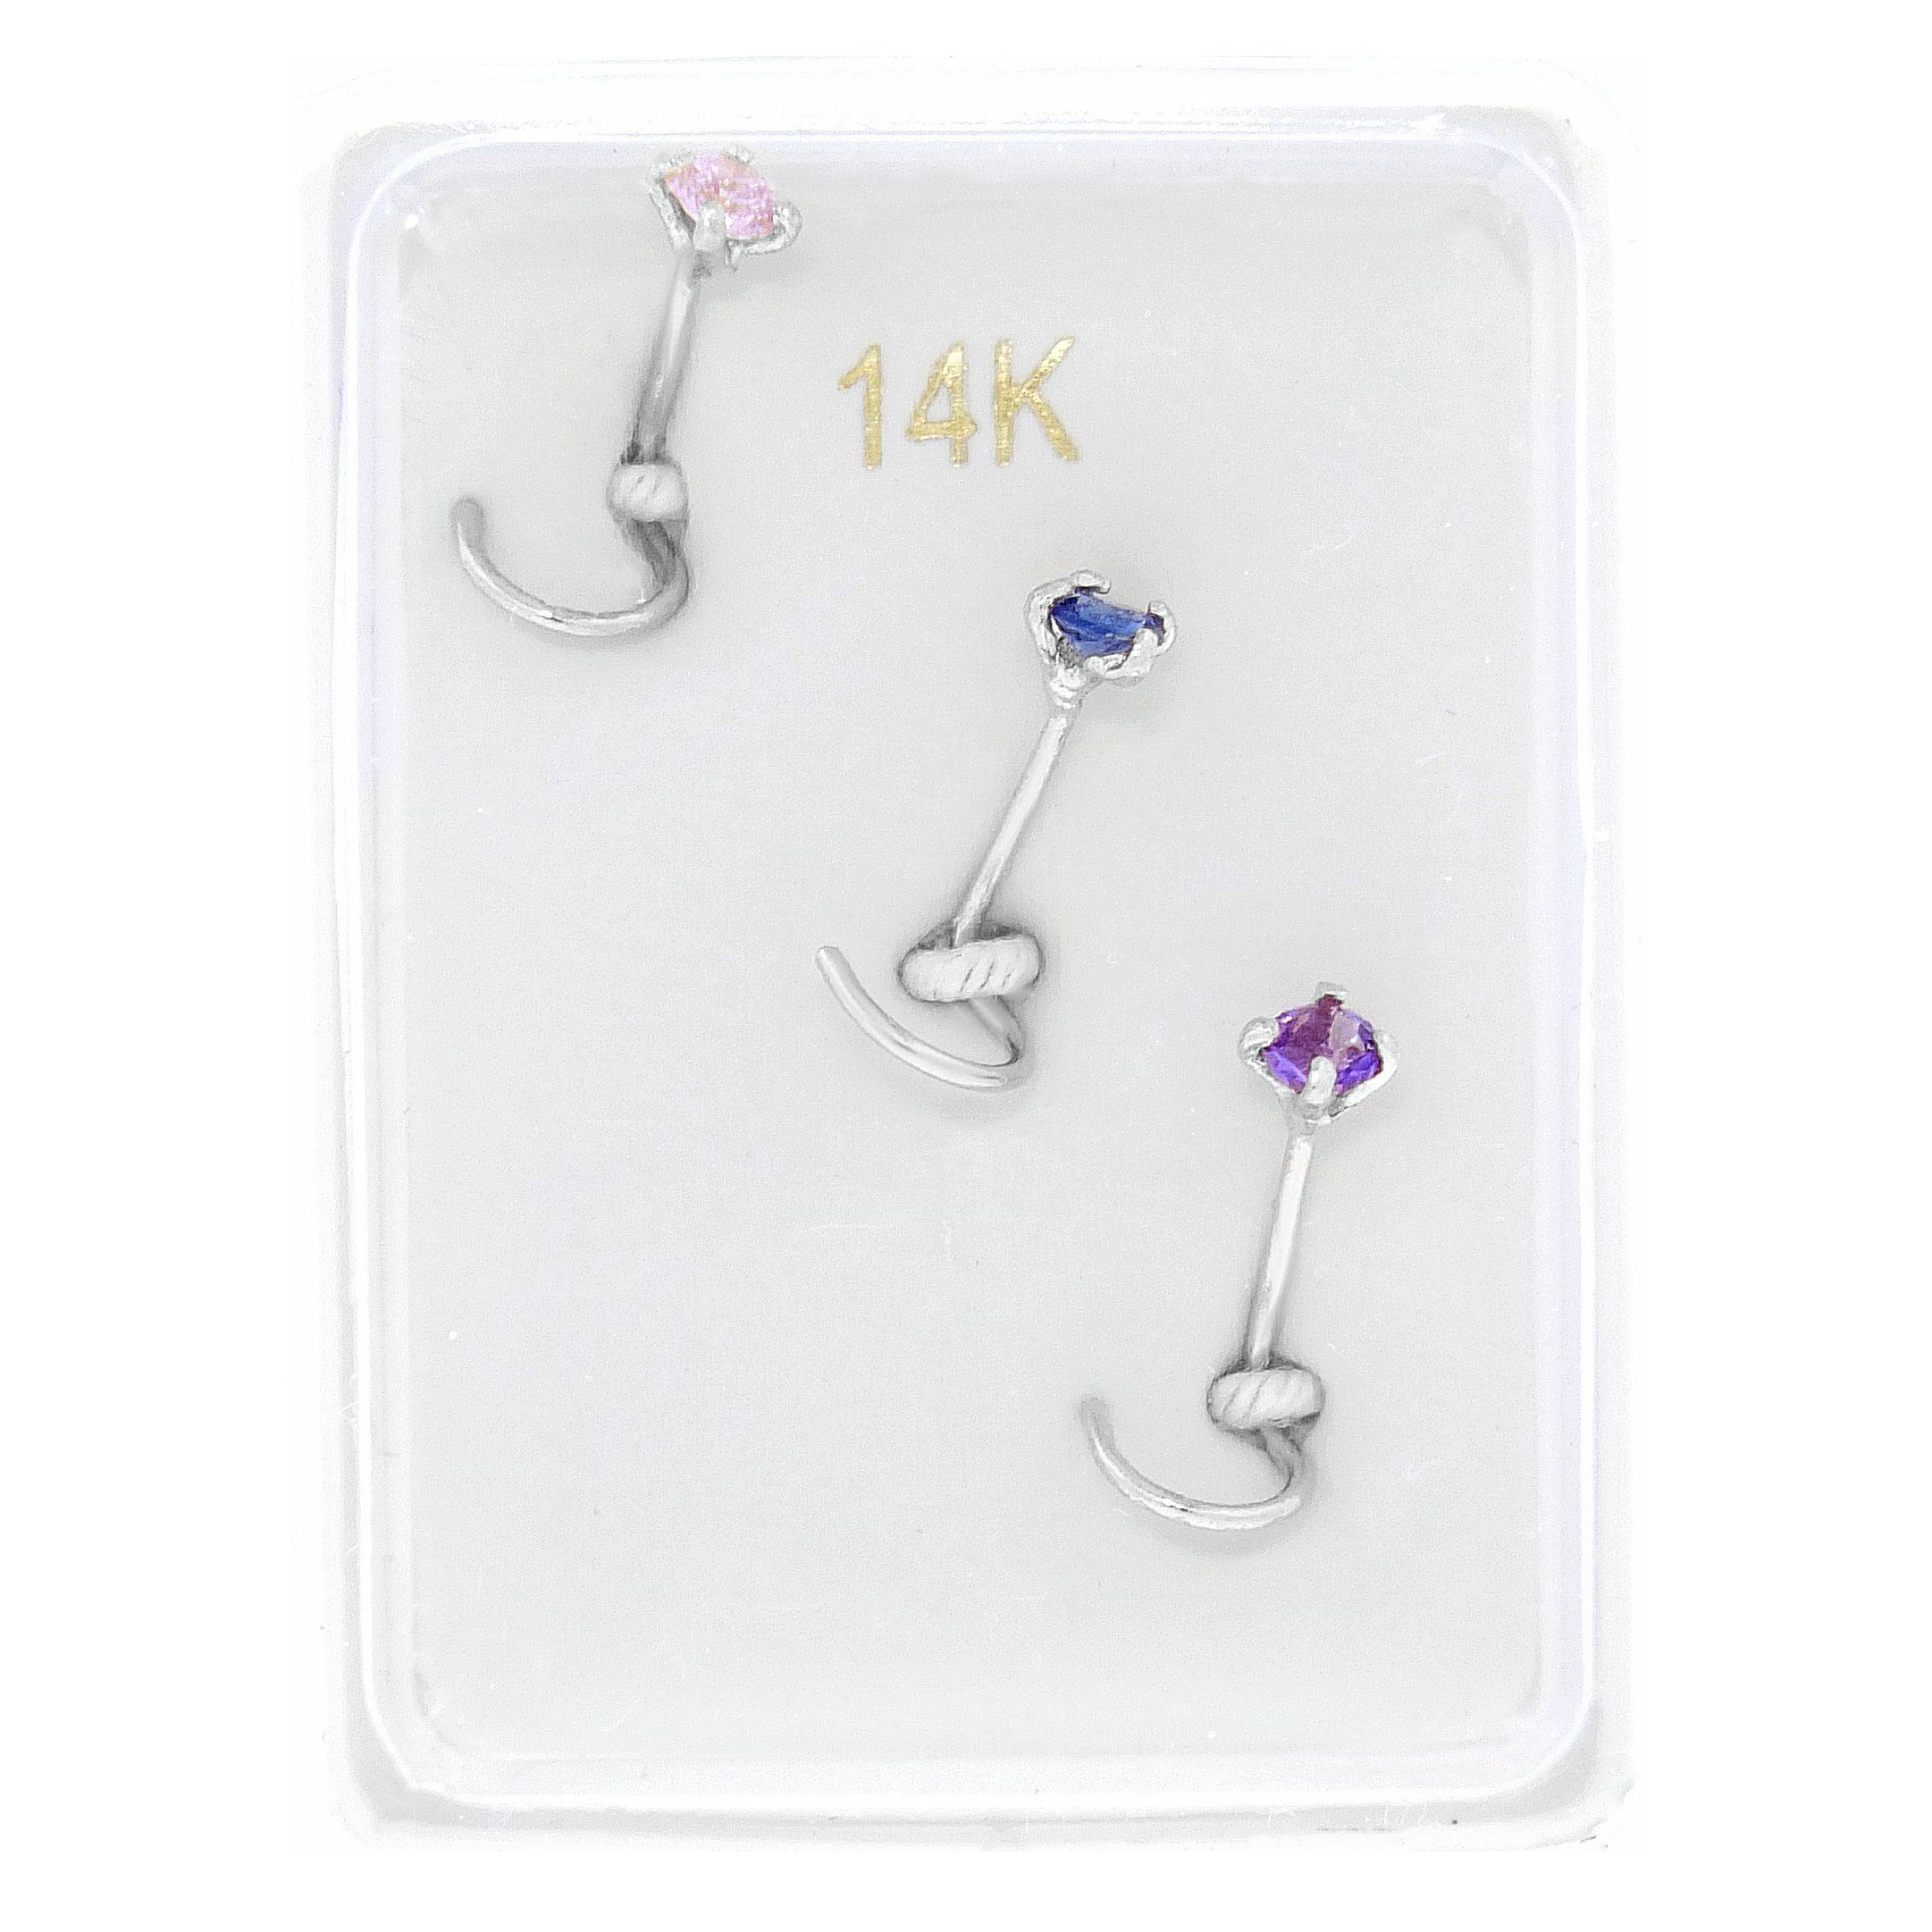 Nose piercing cut out  K White Gold mm Created Pink Blue Purple Sapphire Nose Ring Set